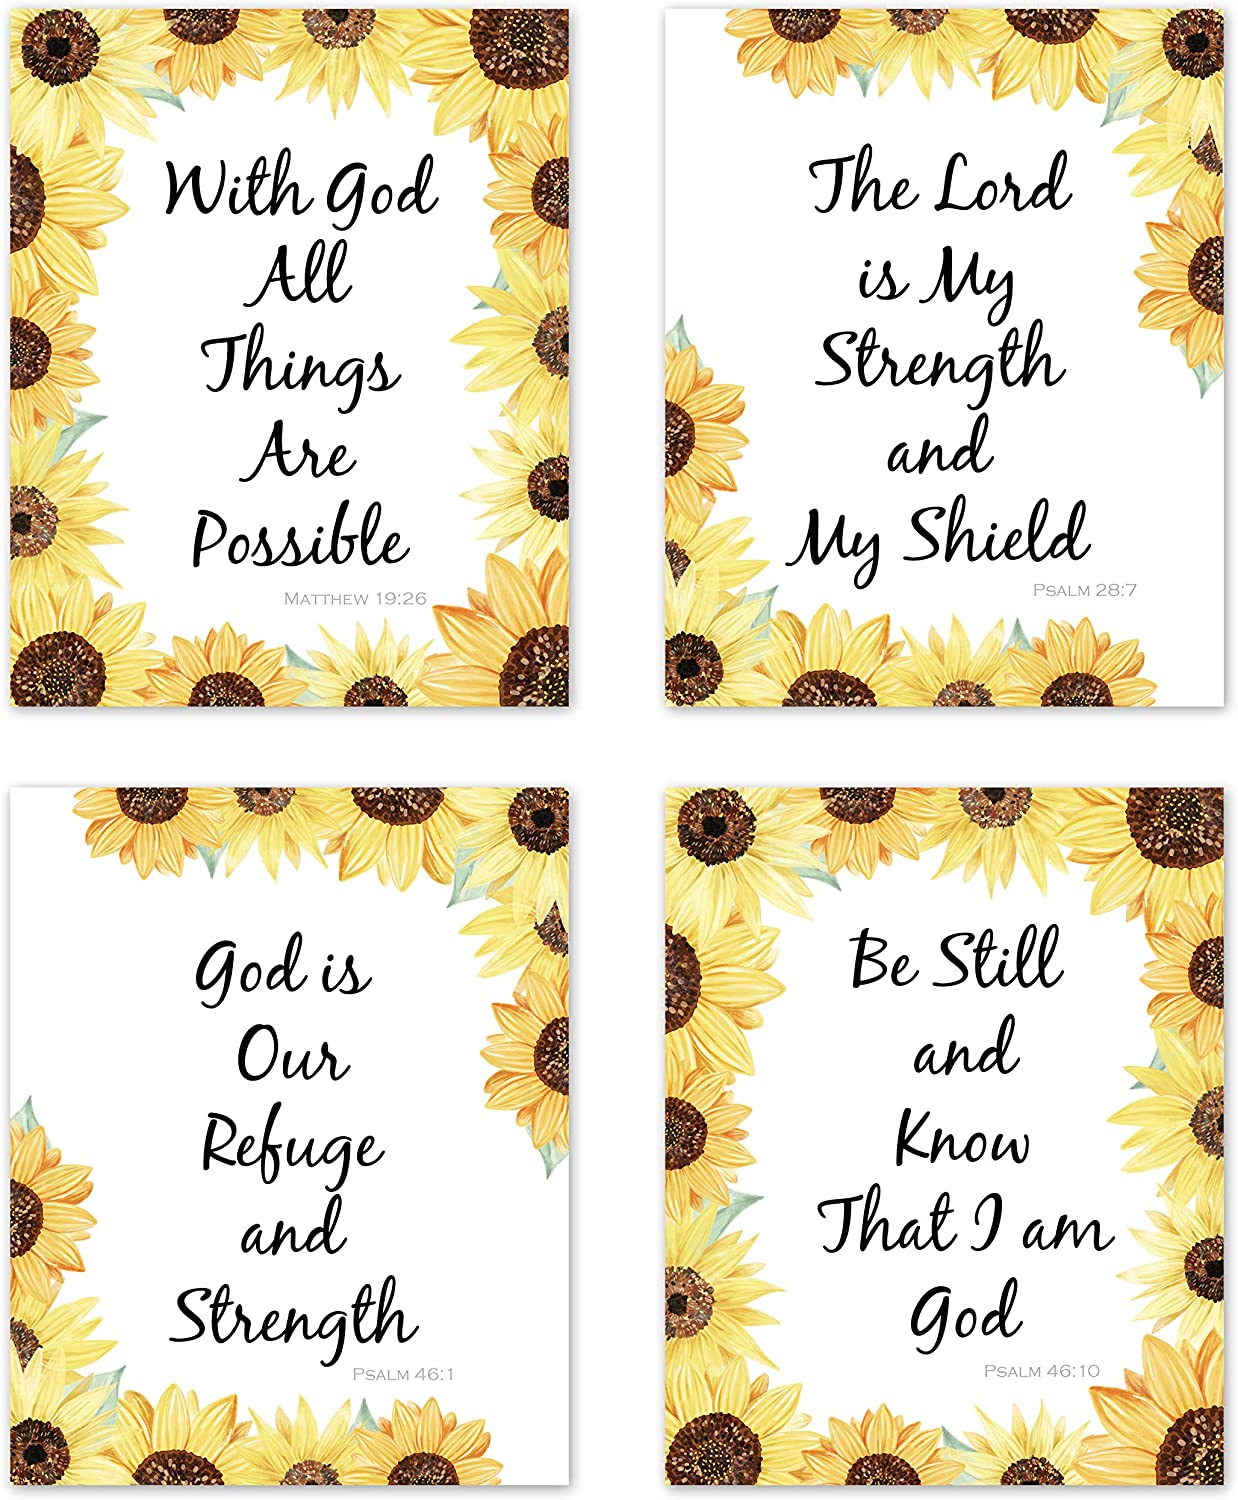 Farmhouse Yellow Sunflower Inspirational Christian Bible Verse Quotes Sayings Rustic Wall Art Posters Home Room Decor Boho Floral Flower Vintage Country Pictures Prints Decorations Scripture Religious